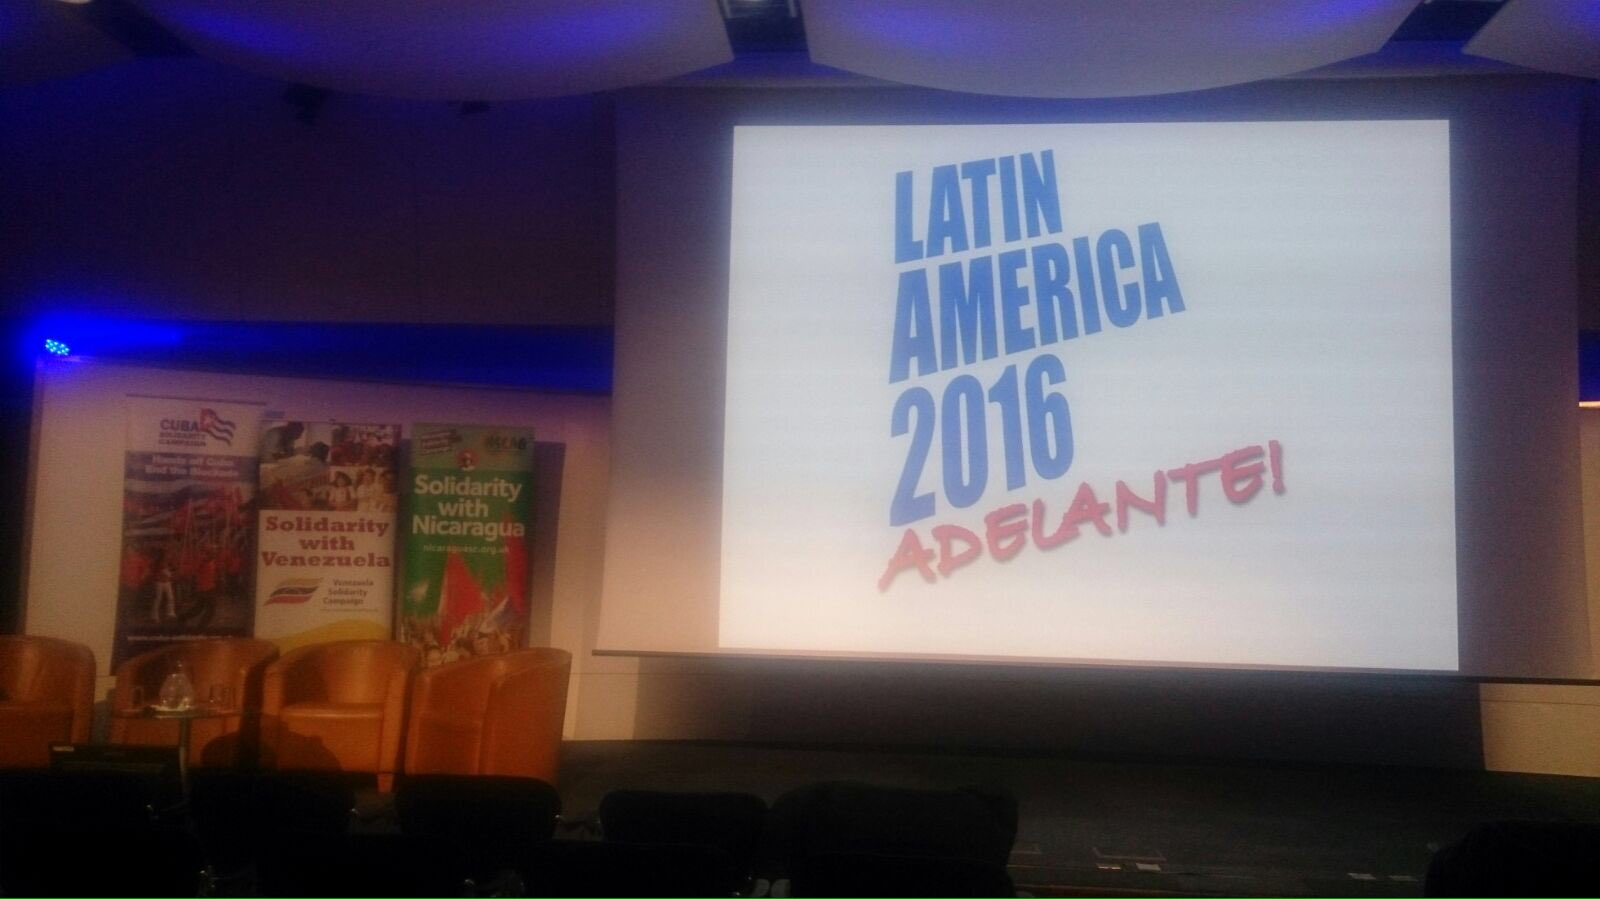 Ready to go! We'll say goodbye to Fidel together, as we celebrate resistance in #LatAmerica16 https://t.co/Yx2RulDVUk https://t.co/E4boUDcN7c